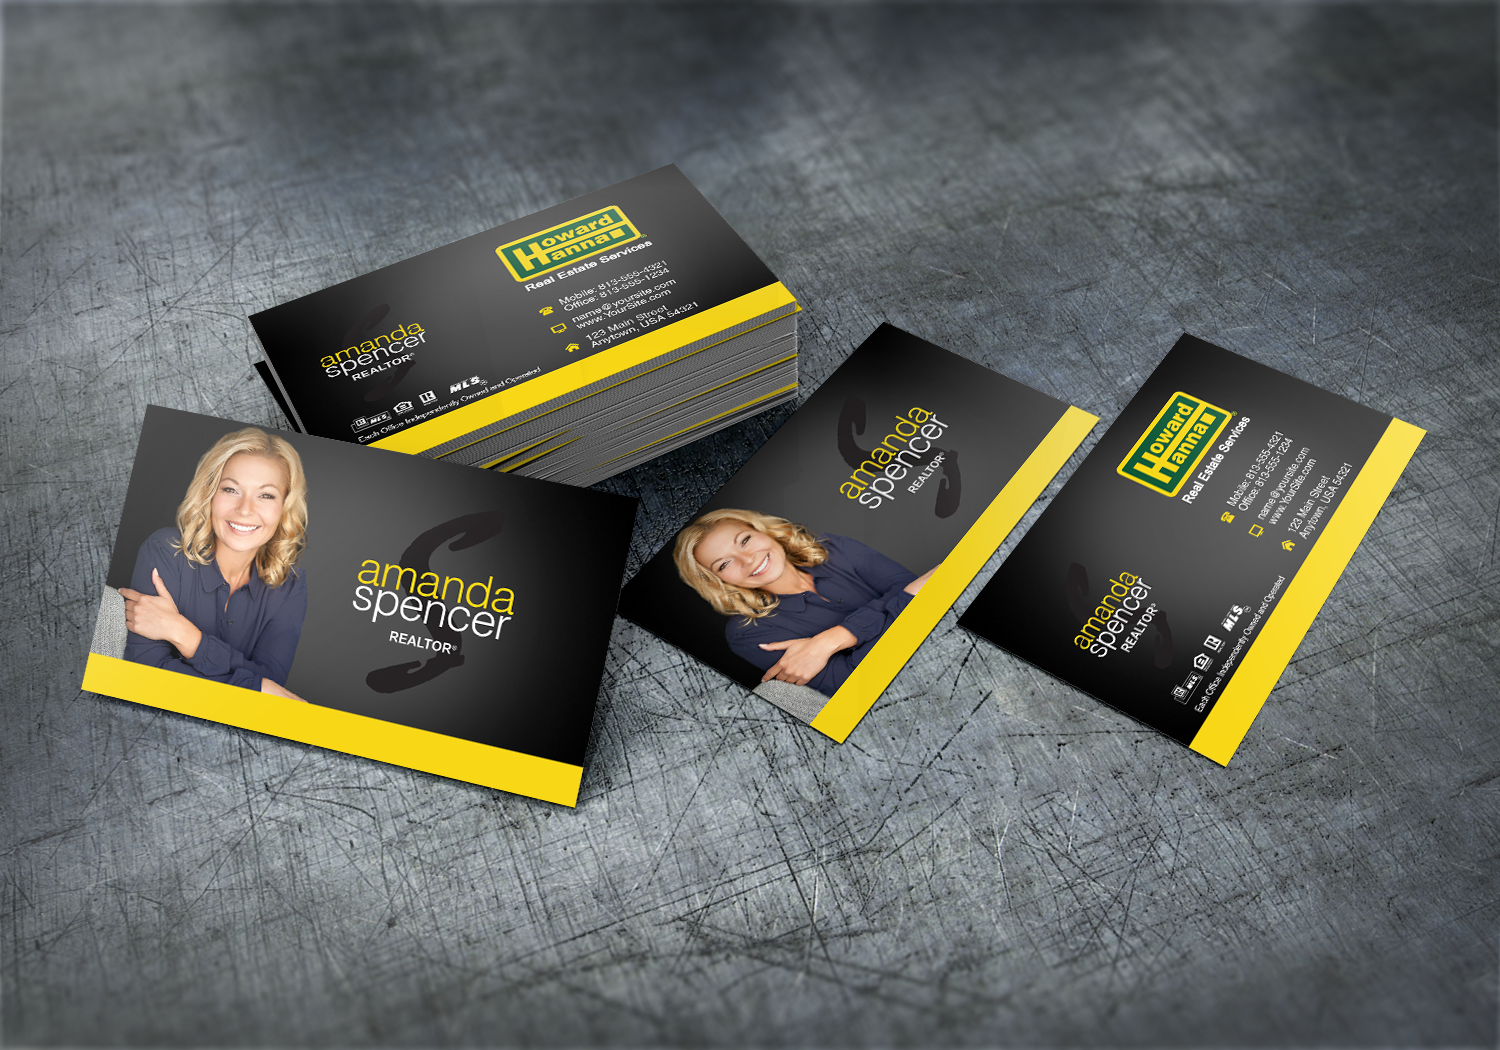 Howard Hanna Business Cards Have Never Looked Better Realtor Howardhanna Reale High Quality Business Cards Business Cards Online Real Estate Business Cards